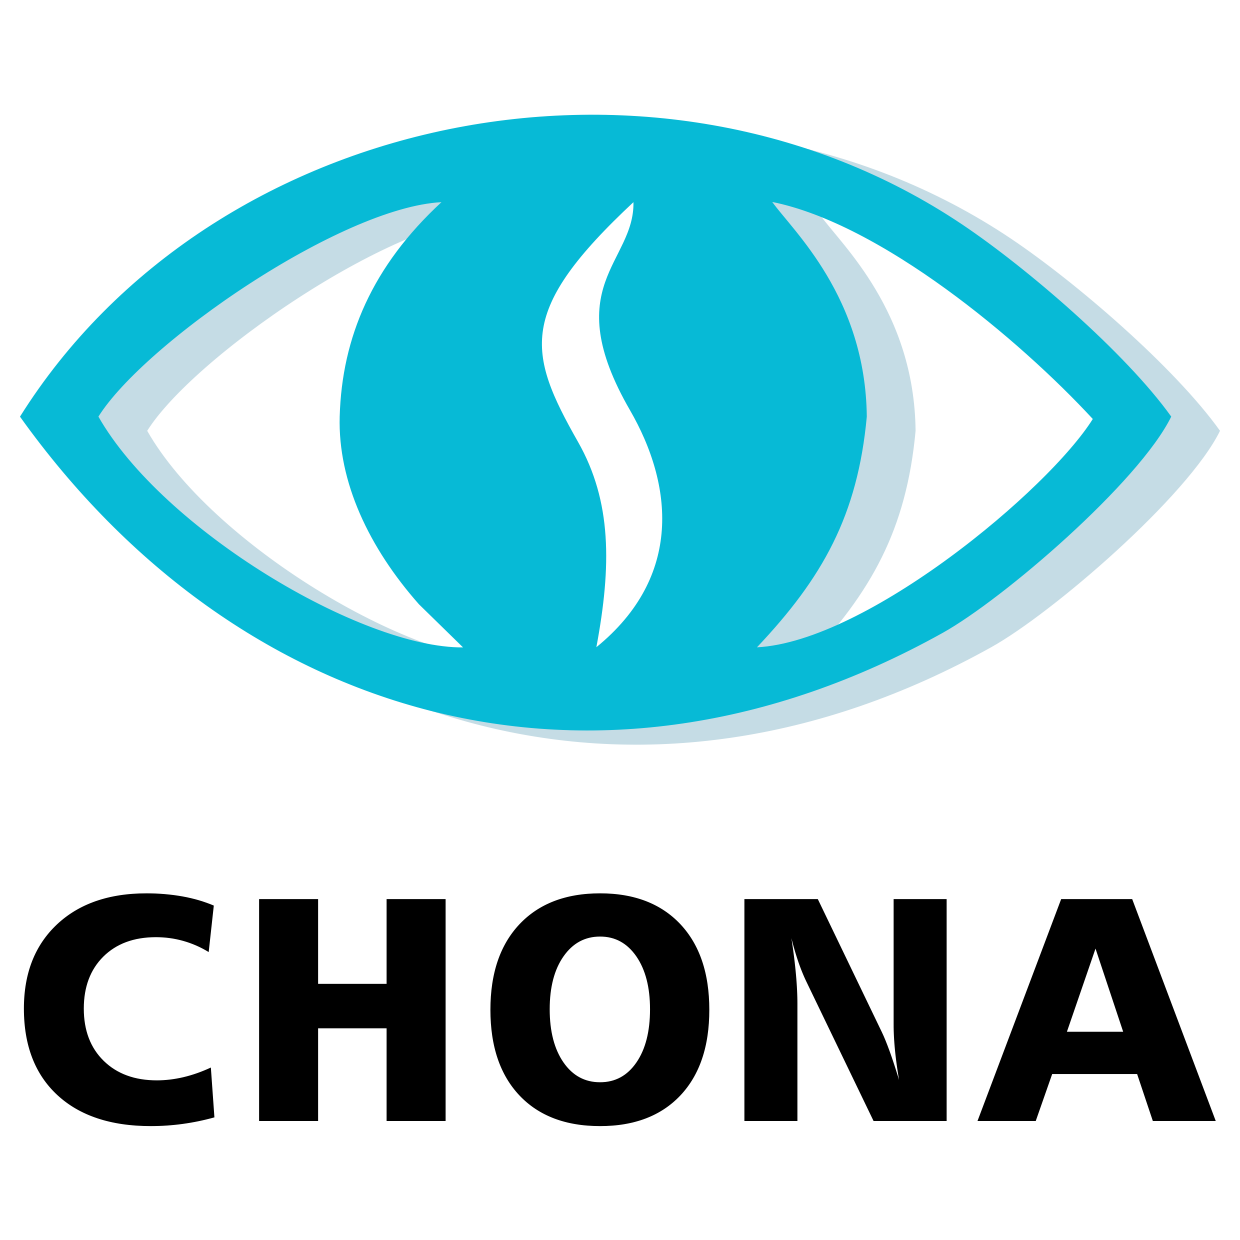 CHONA – Global leaders in Ophthalmic Surgical Instruments and